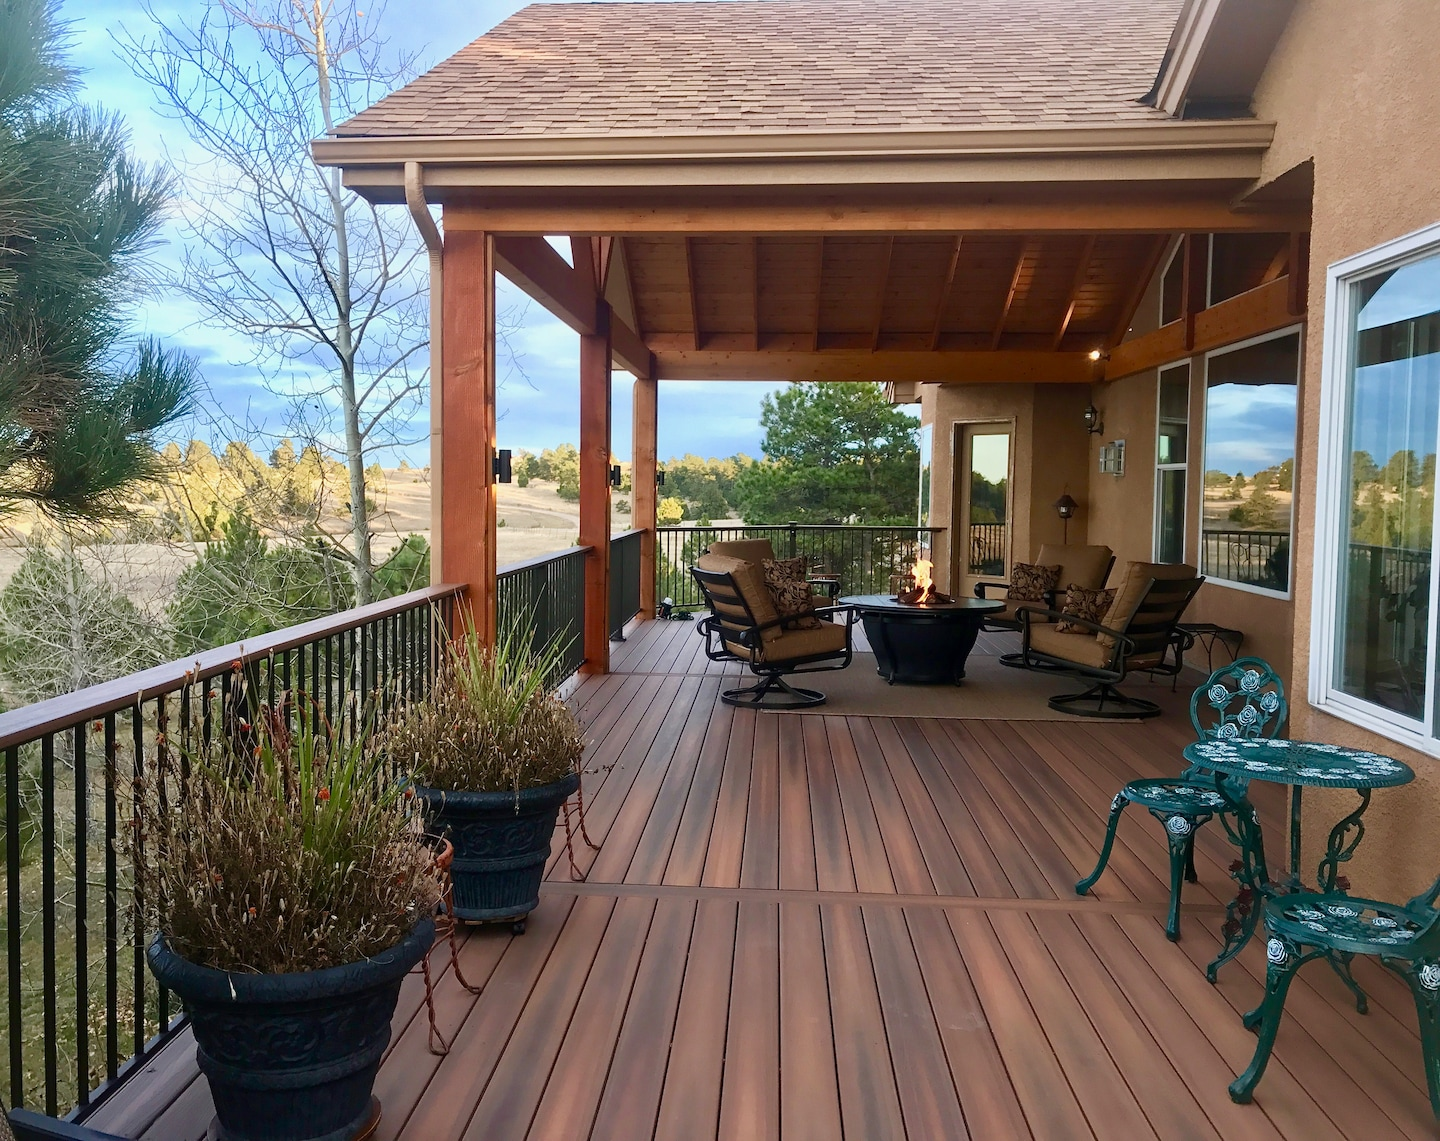 Premier Custom Decks & Outdoor Living